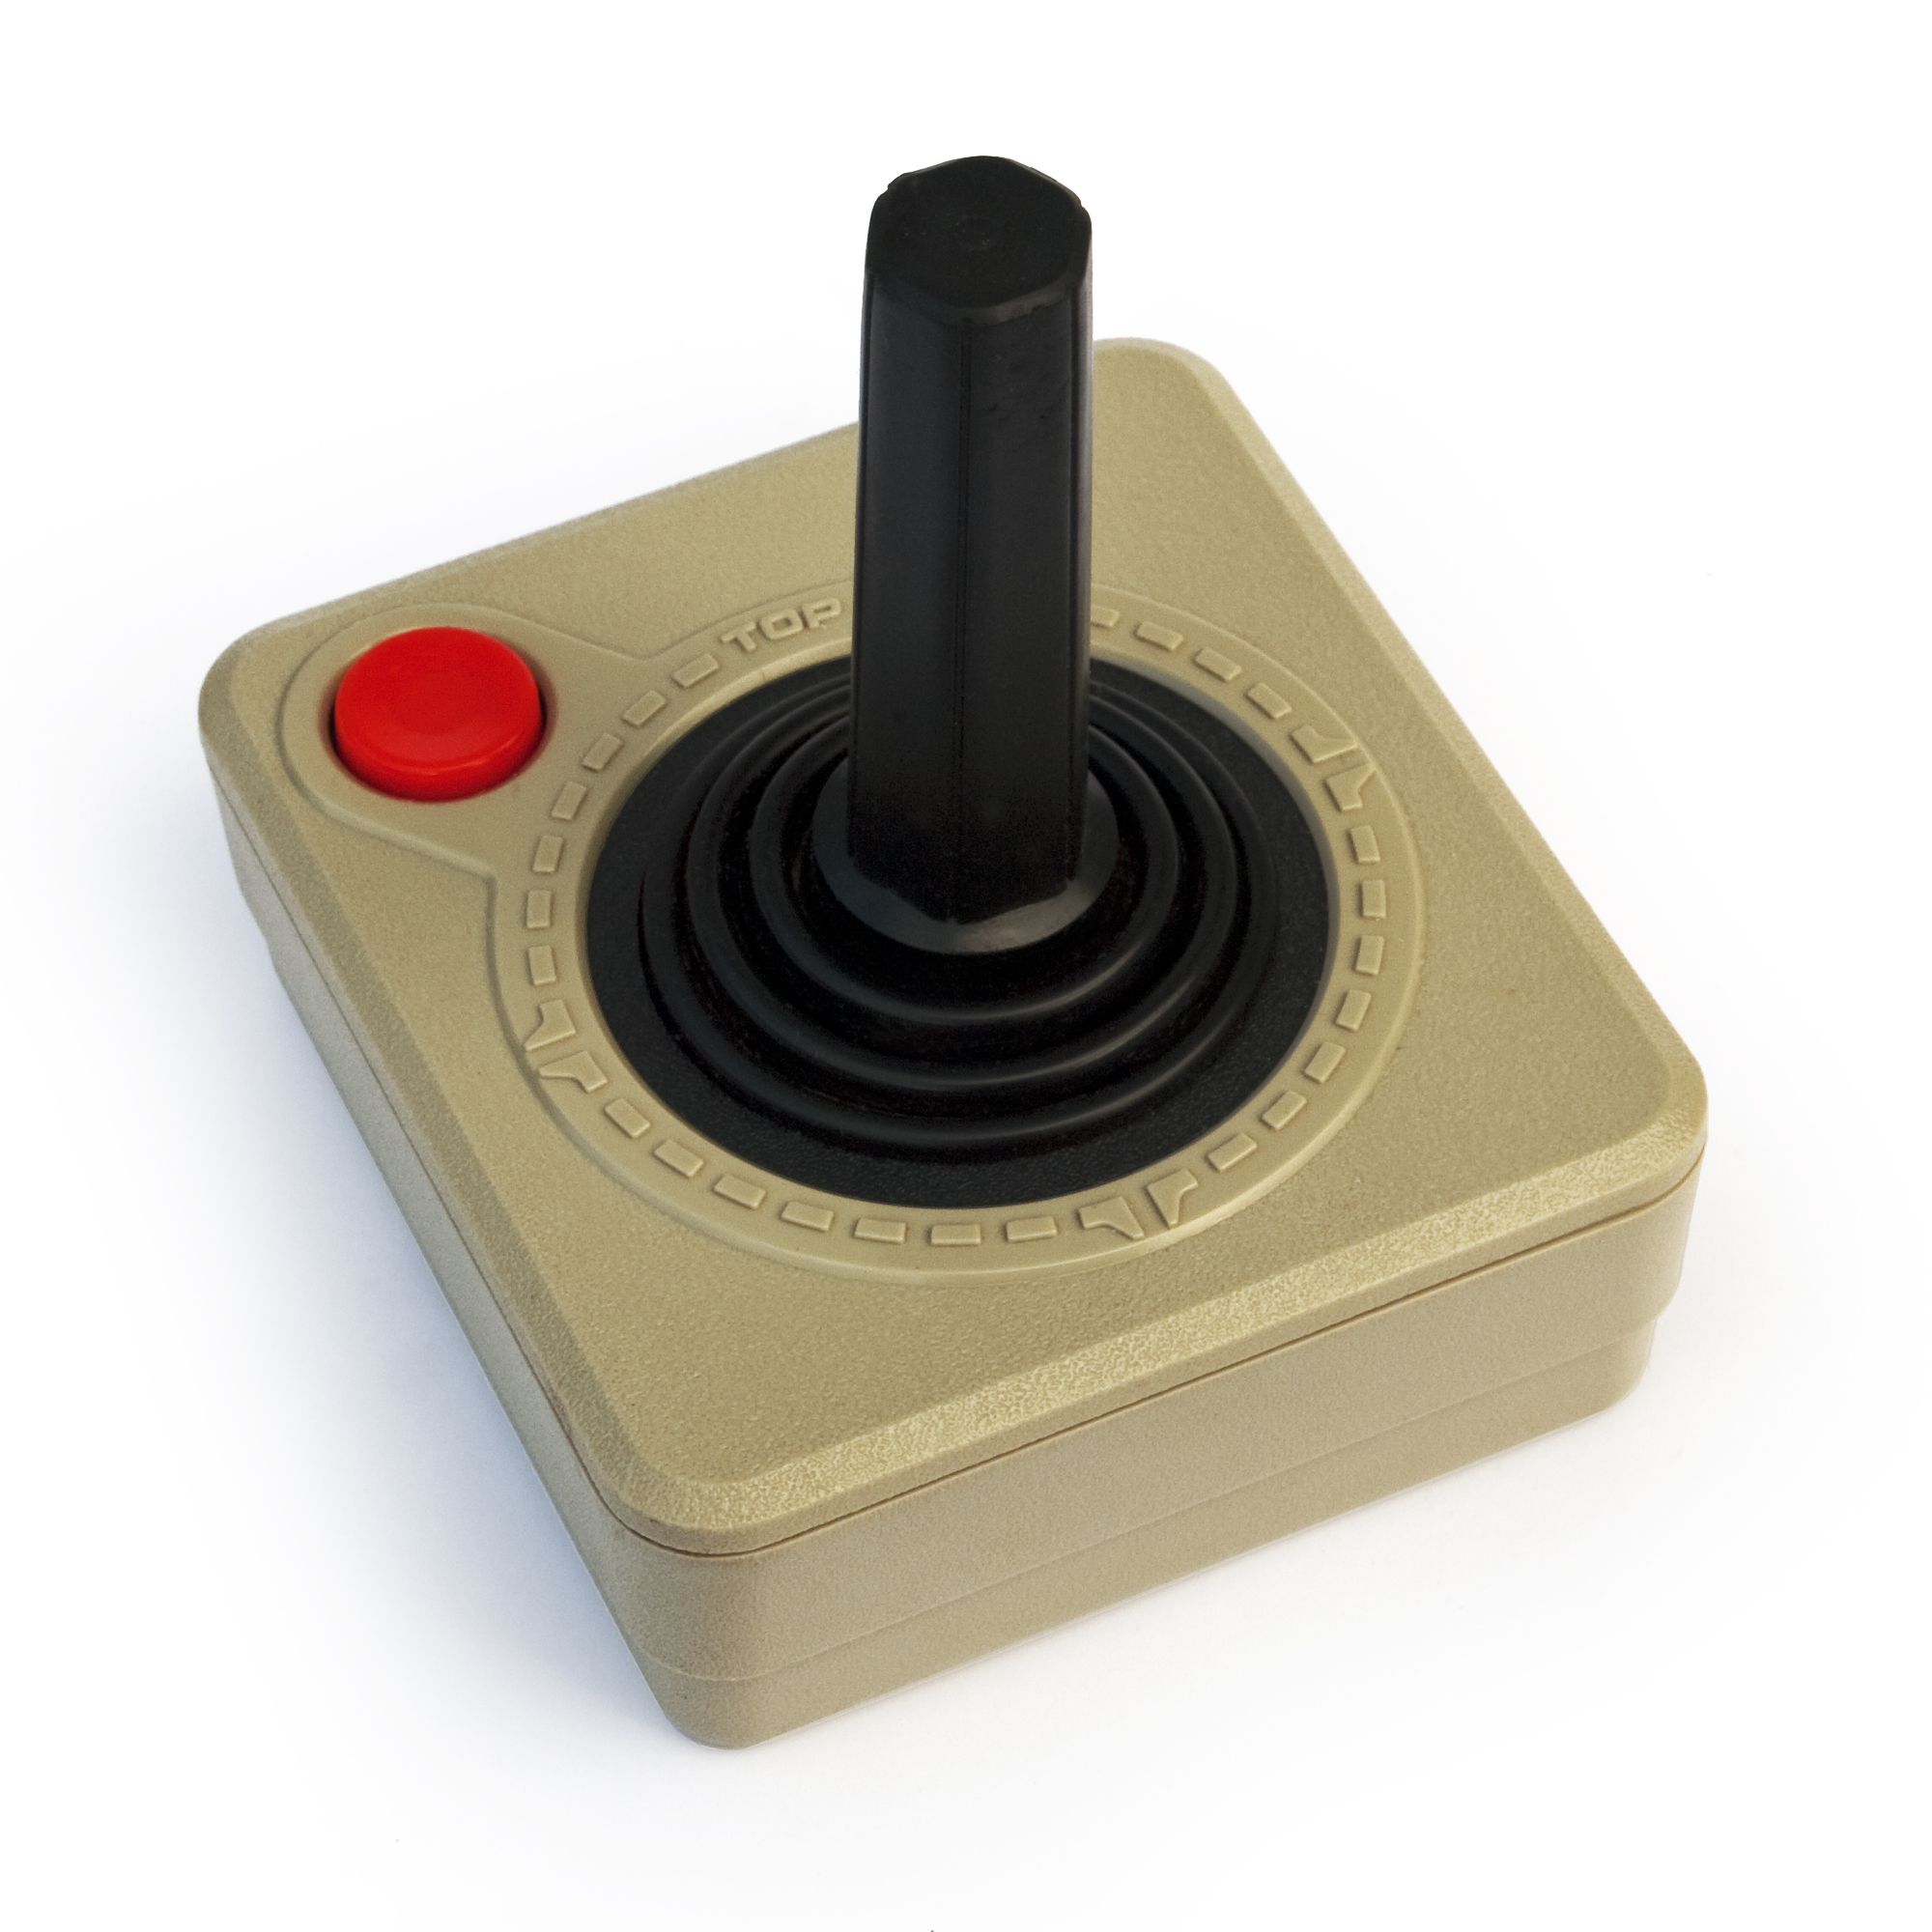 Light Holder File Atari Xe Joystick Jpg Wikimedia Commons